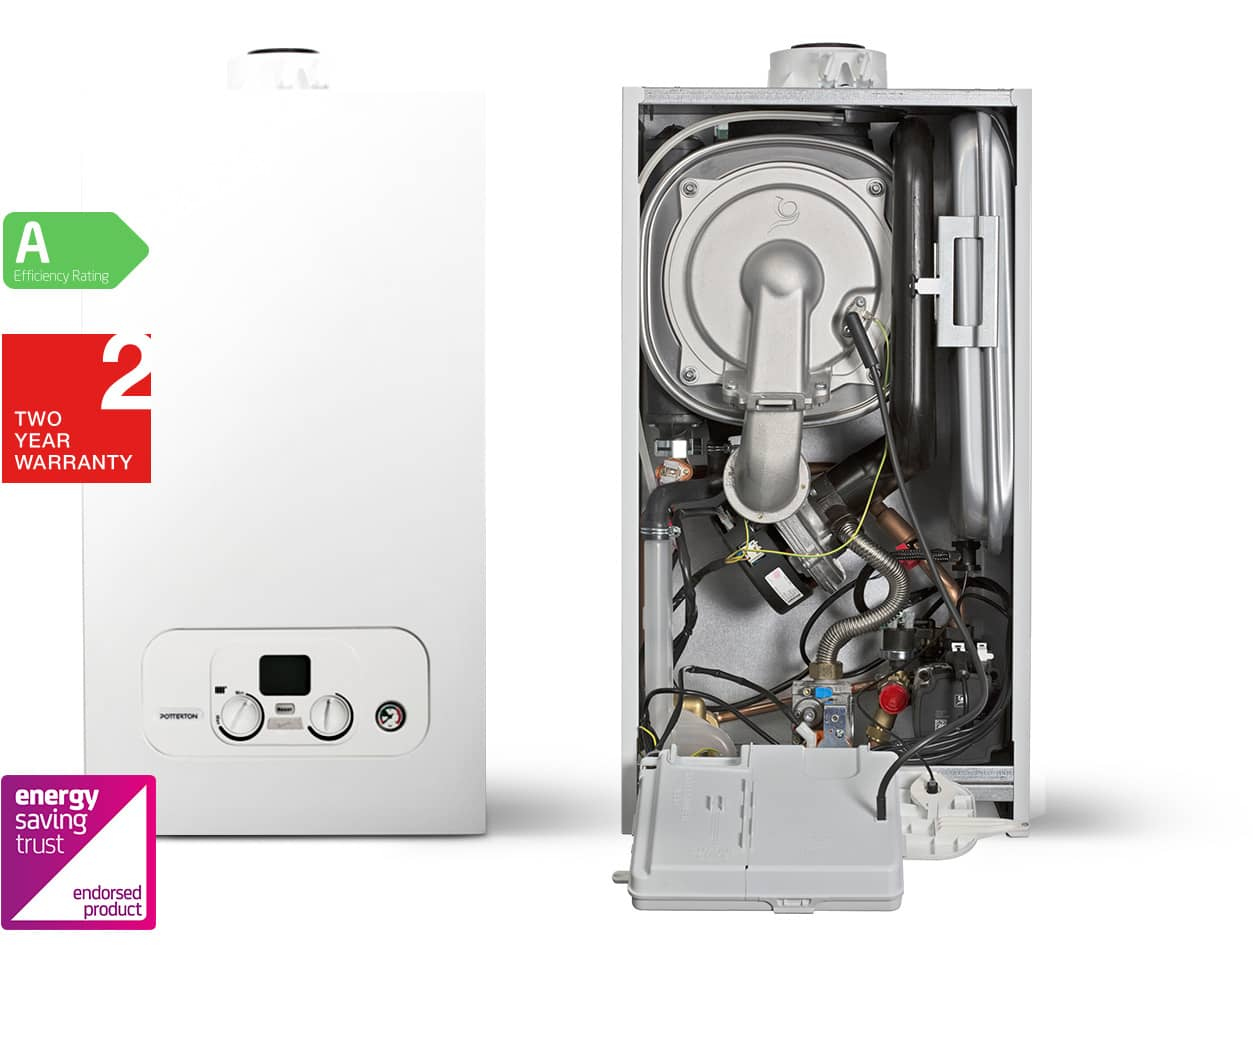 Assure System product image